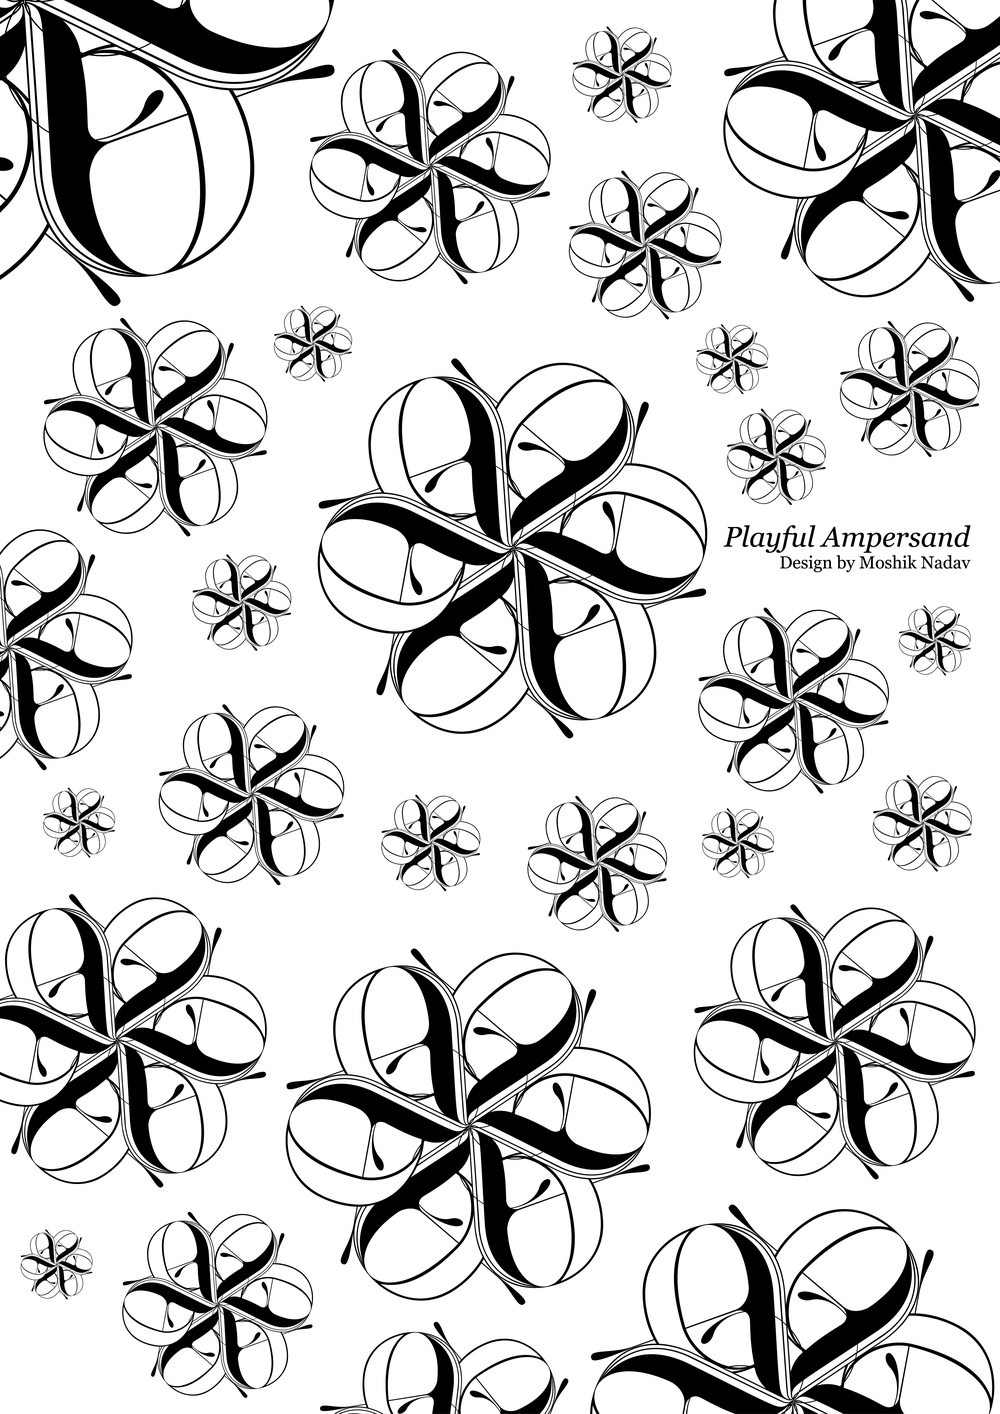 Playful-ampersand-45.jpg